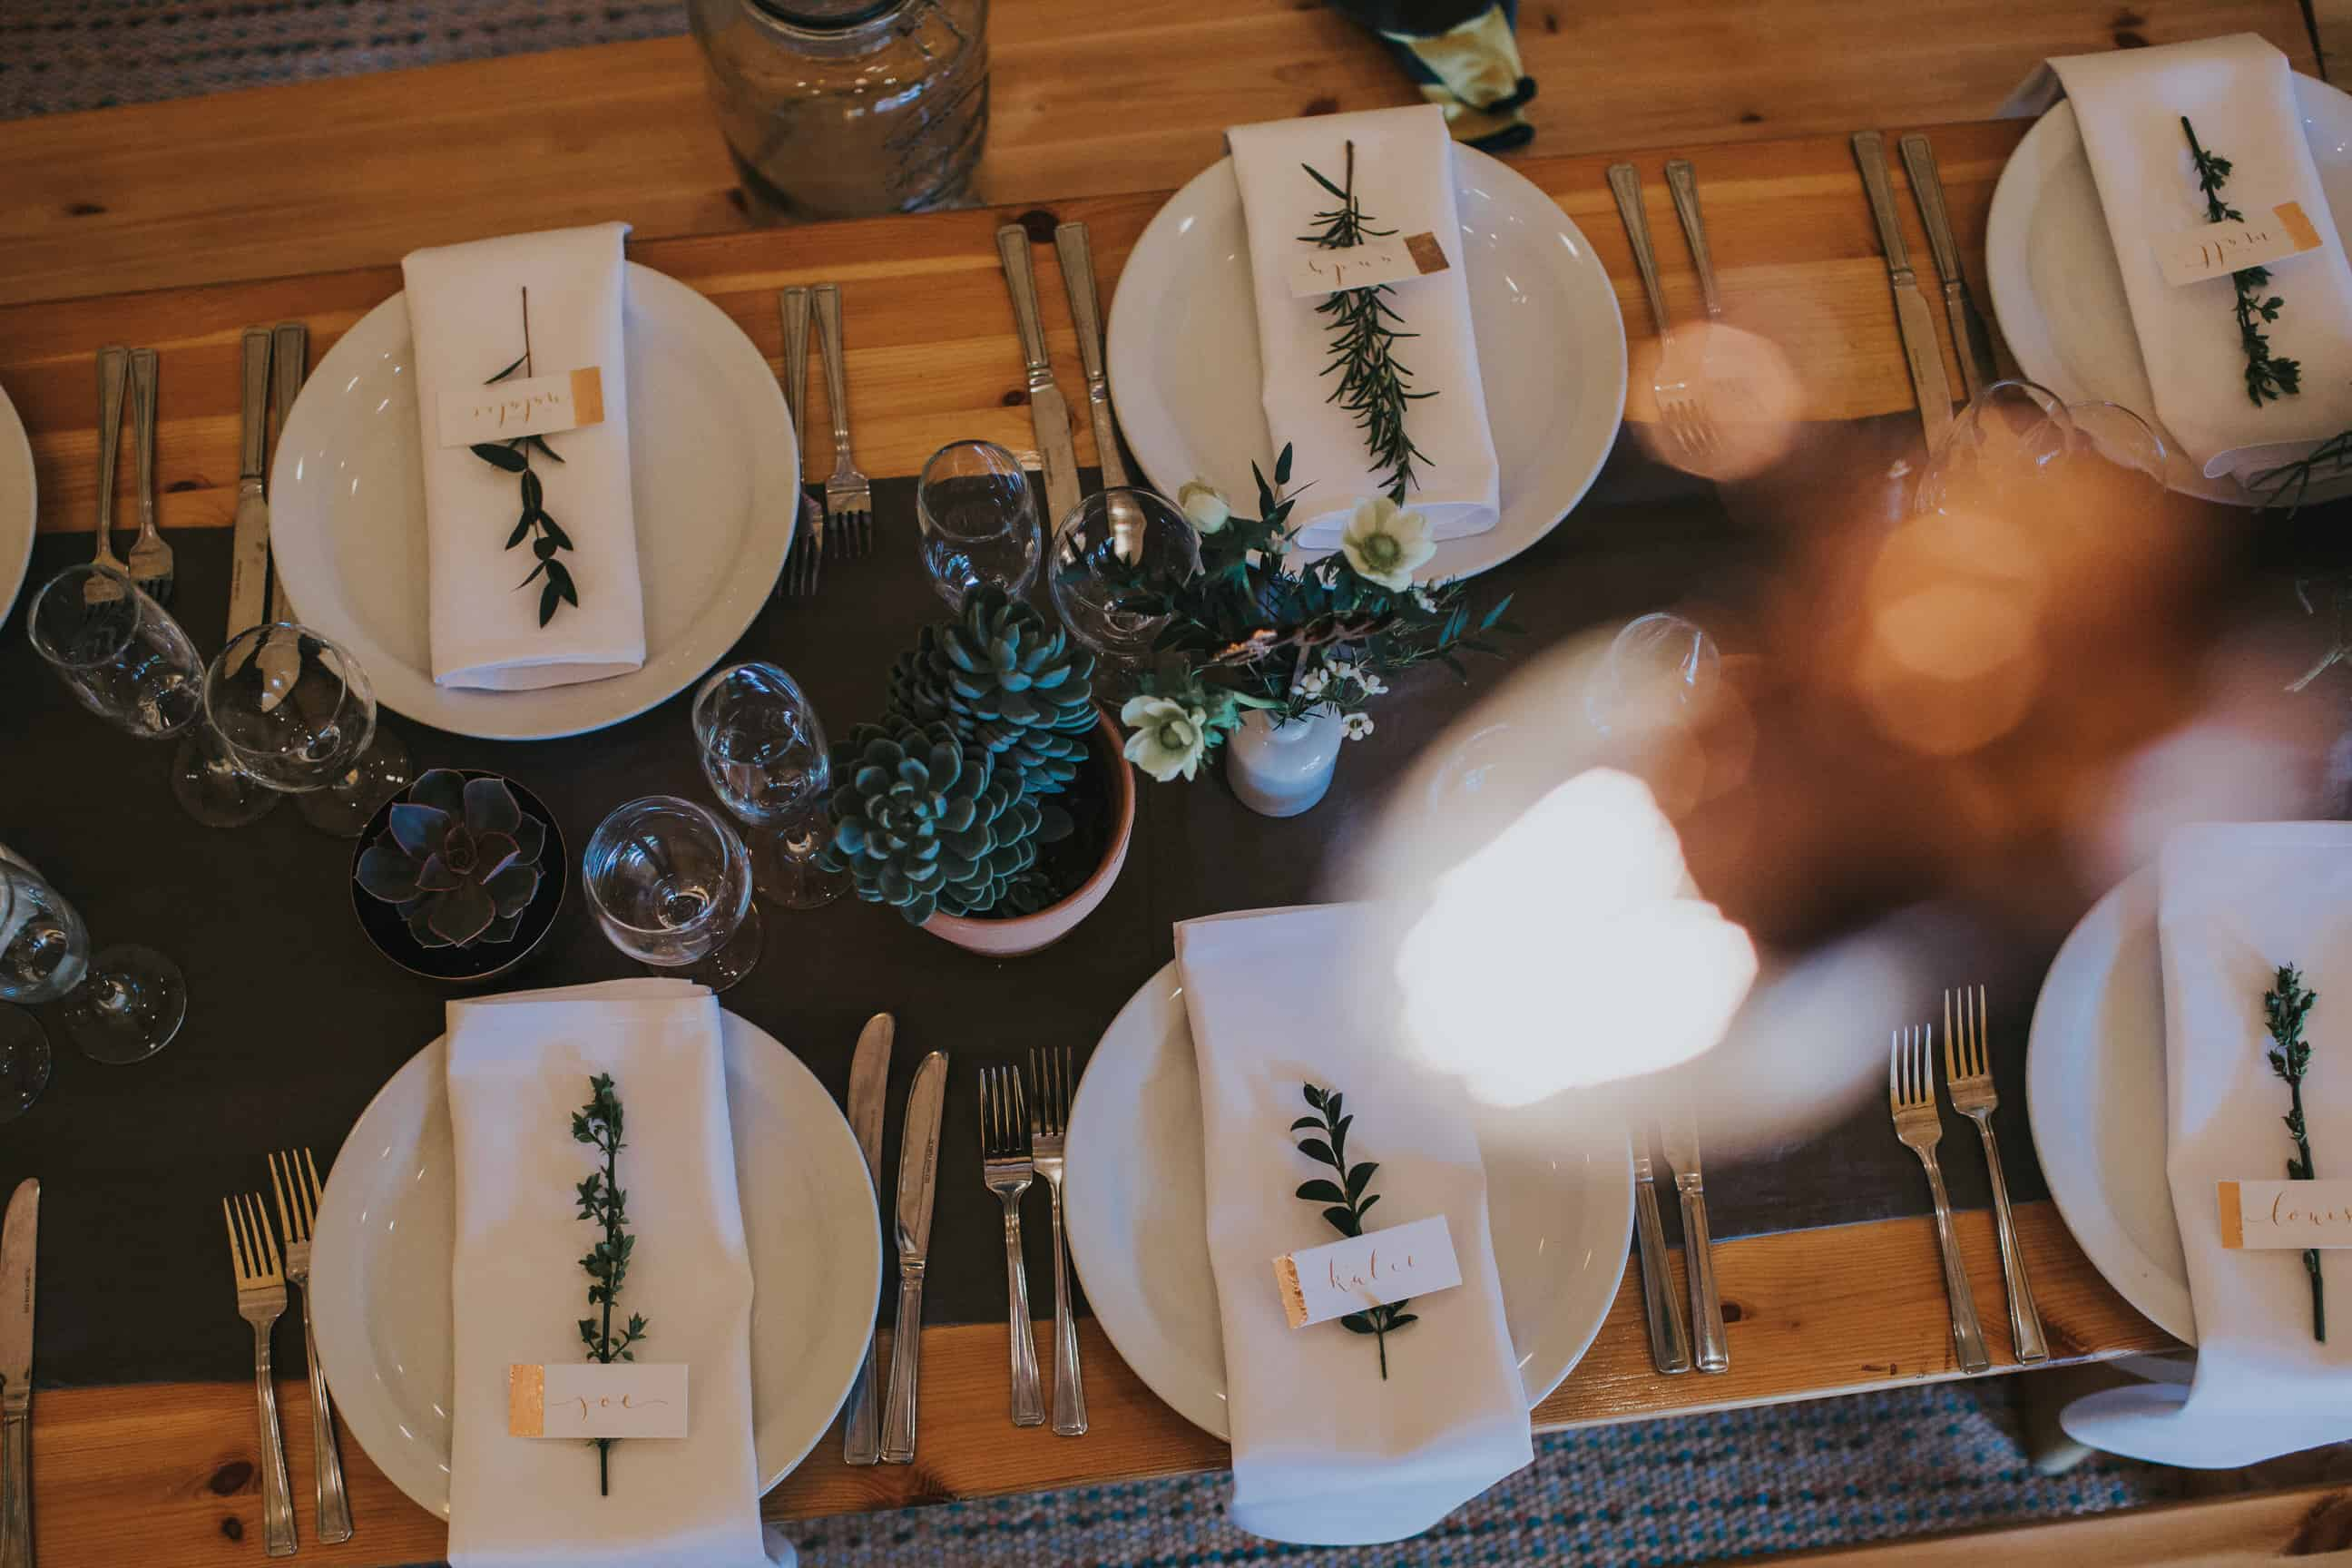 Tipi Table Scape by Sami Tipi captured by Ed Brown Photography